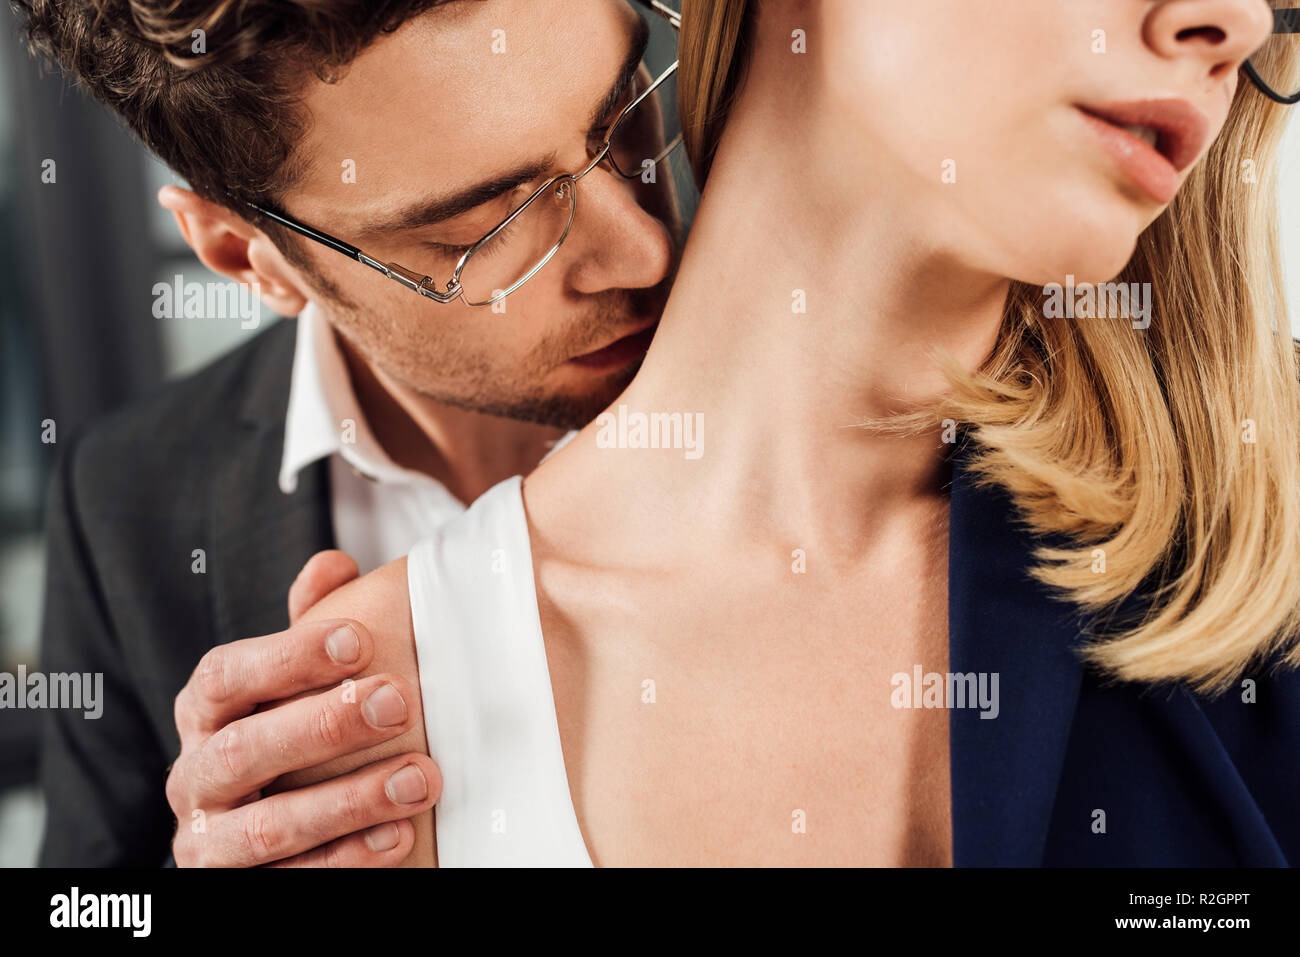 kissing neck stock photos amp kissing neck stock images alamy